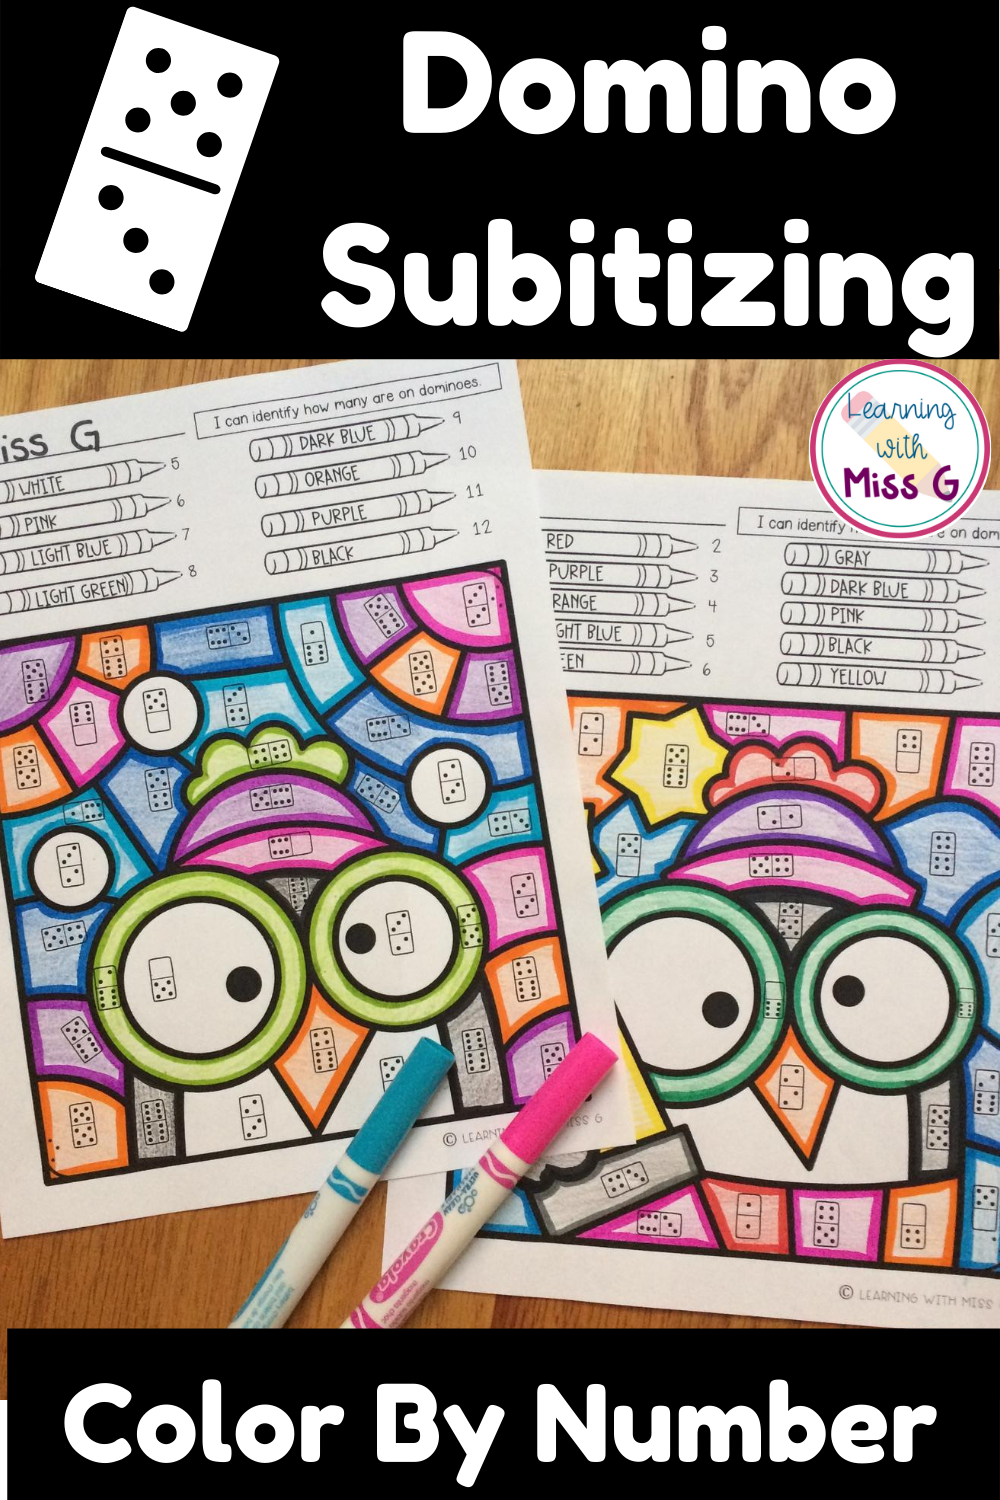 Domino Subitizing Color By Number Worksheets Subitizing Subitizing Activities Math Center Games [ 1500 x 1000 Pixel ]